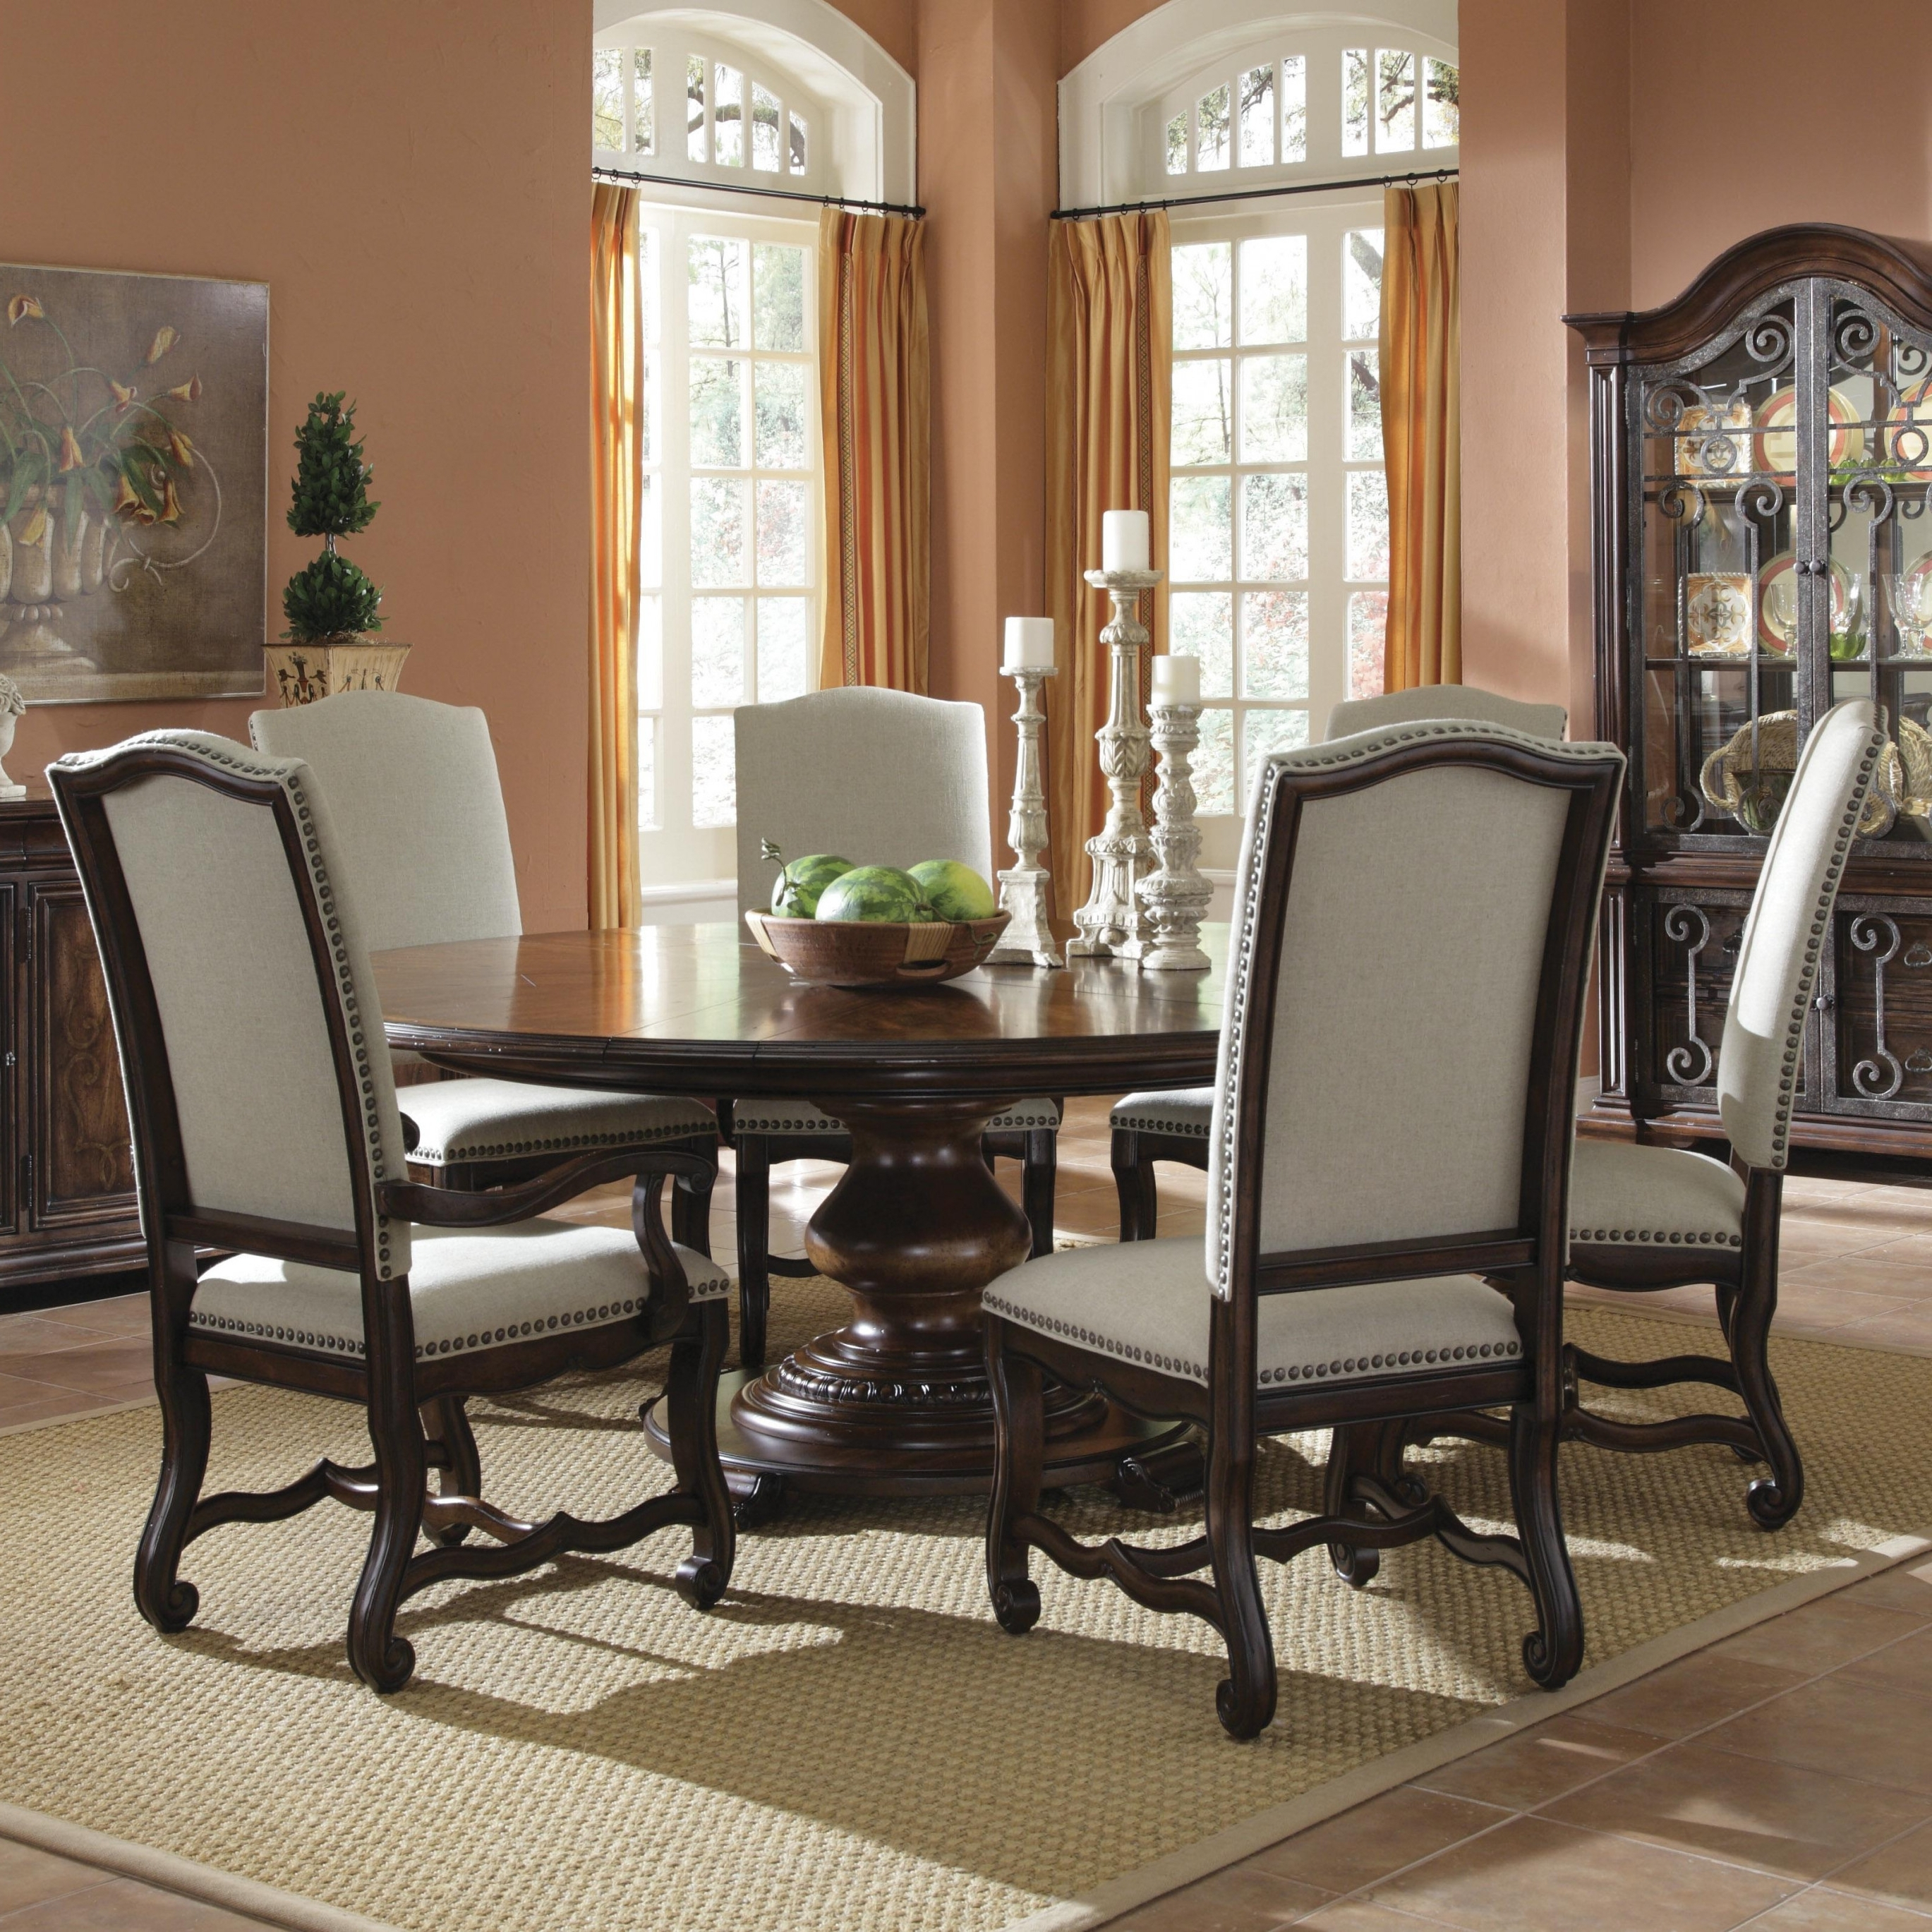 Widely Used Round Table 6 Person Round Dining Table Household Plan About Round Within 6 Person Round Dining Tables (View 25 of 25)